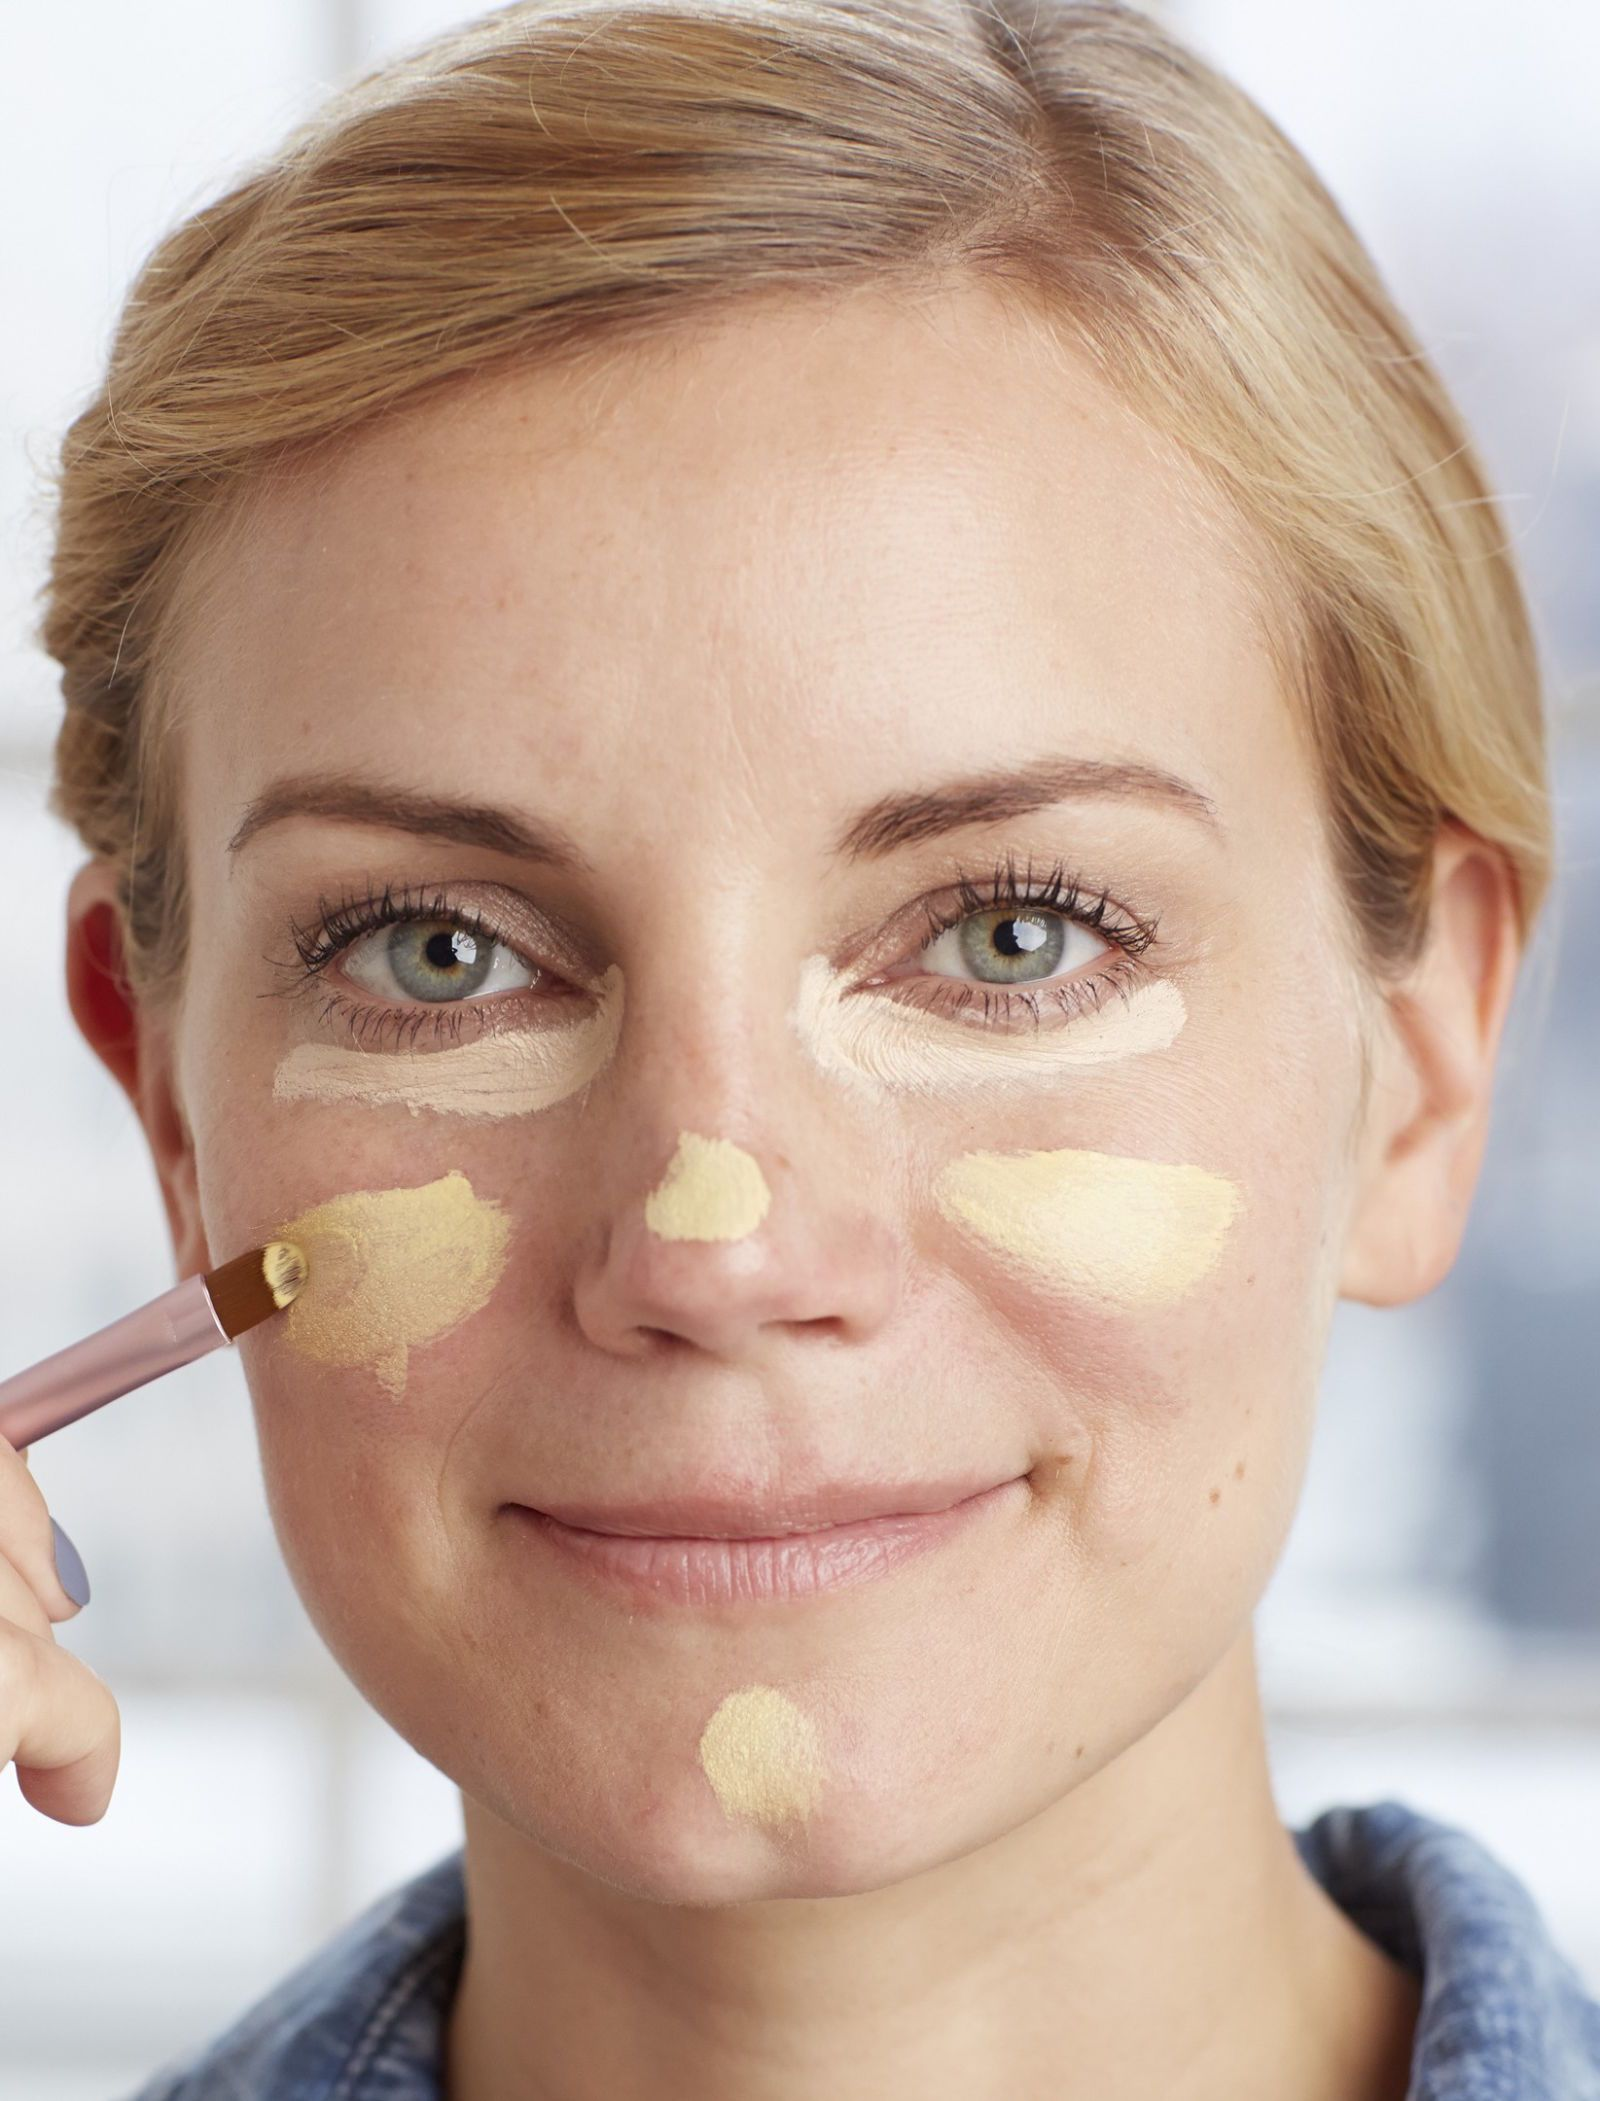 4 Easy Hacks to Fix Your Red, Blotchy Skin Cream